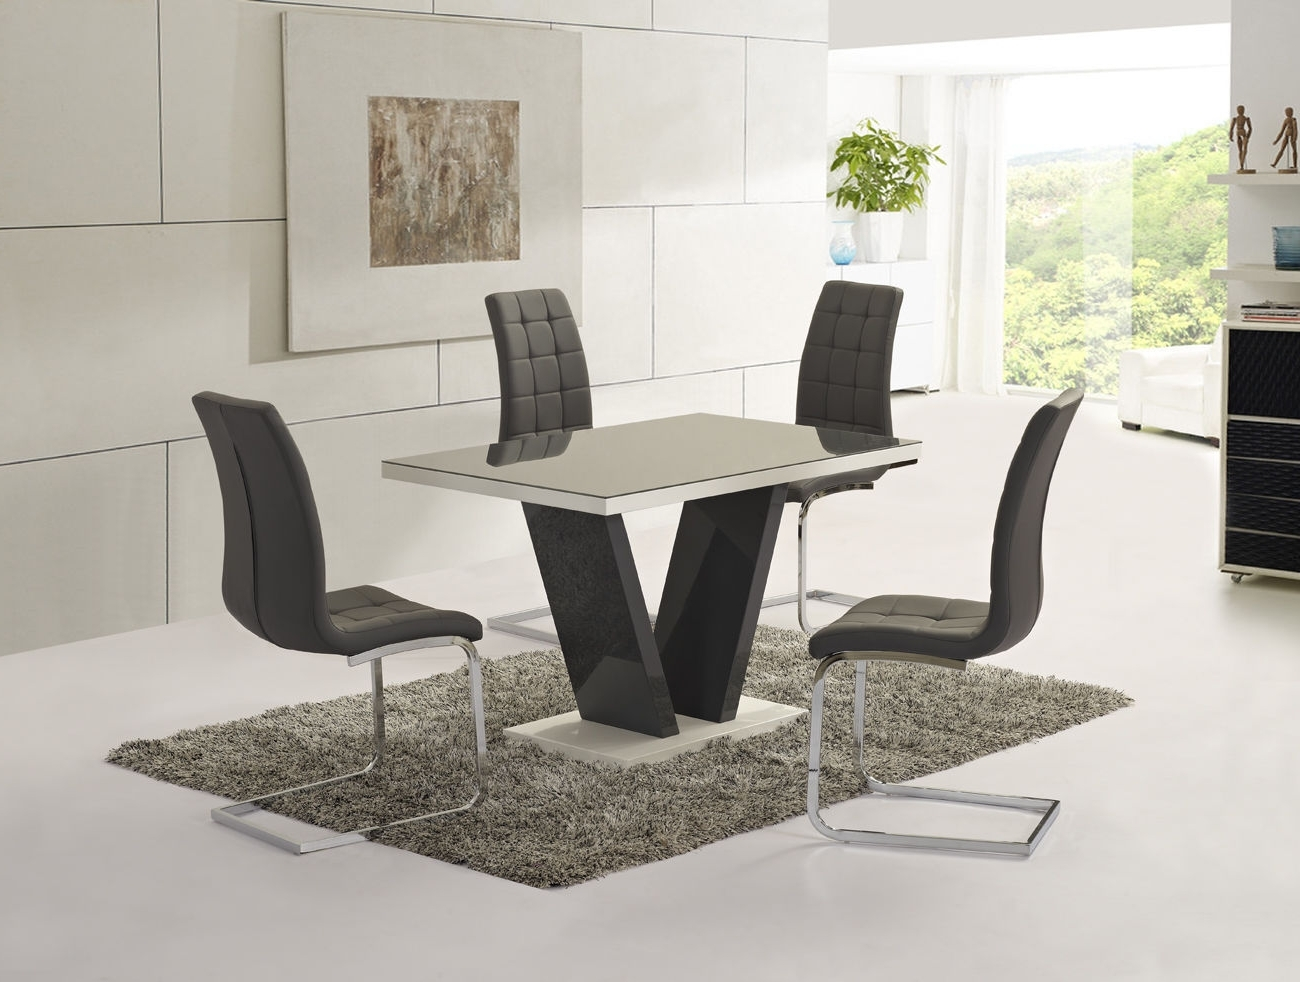 Ga Vico Gloss Grey Glass Top Designer 160Cm Dining Set – 4 6 Grey In Most Popular High Gloss White Dining Tables And Chairs (View 14 of 25)